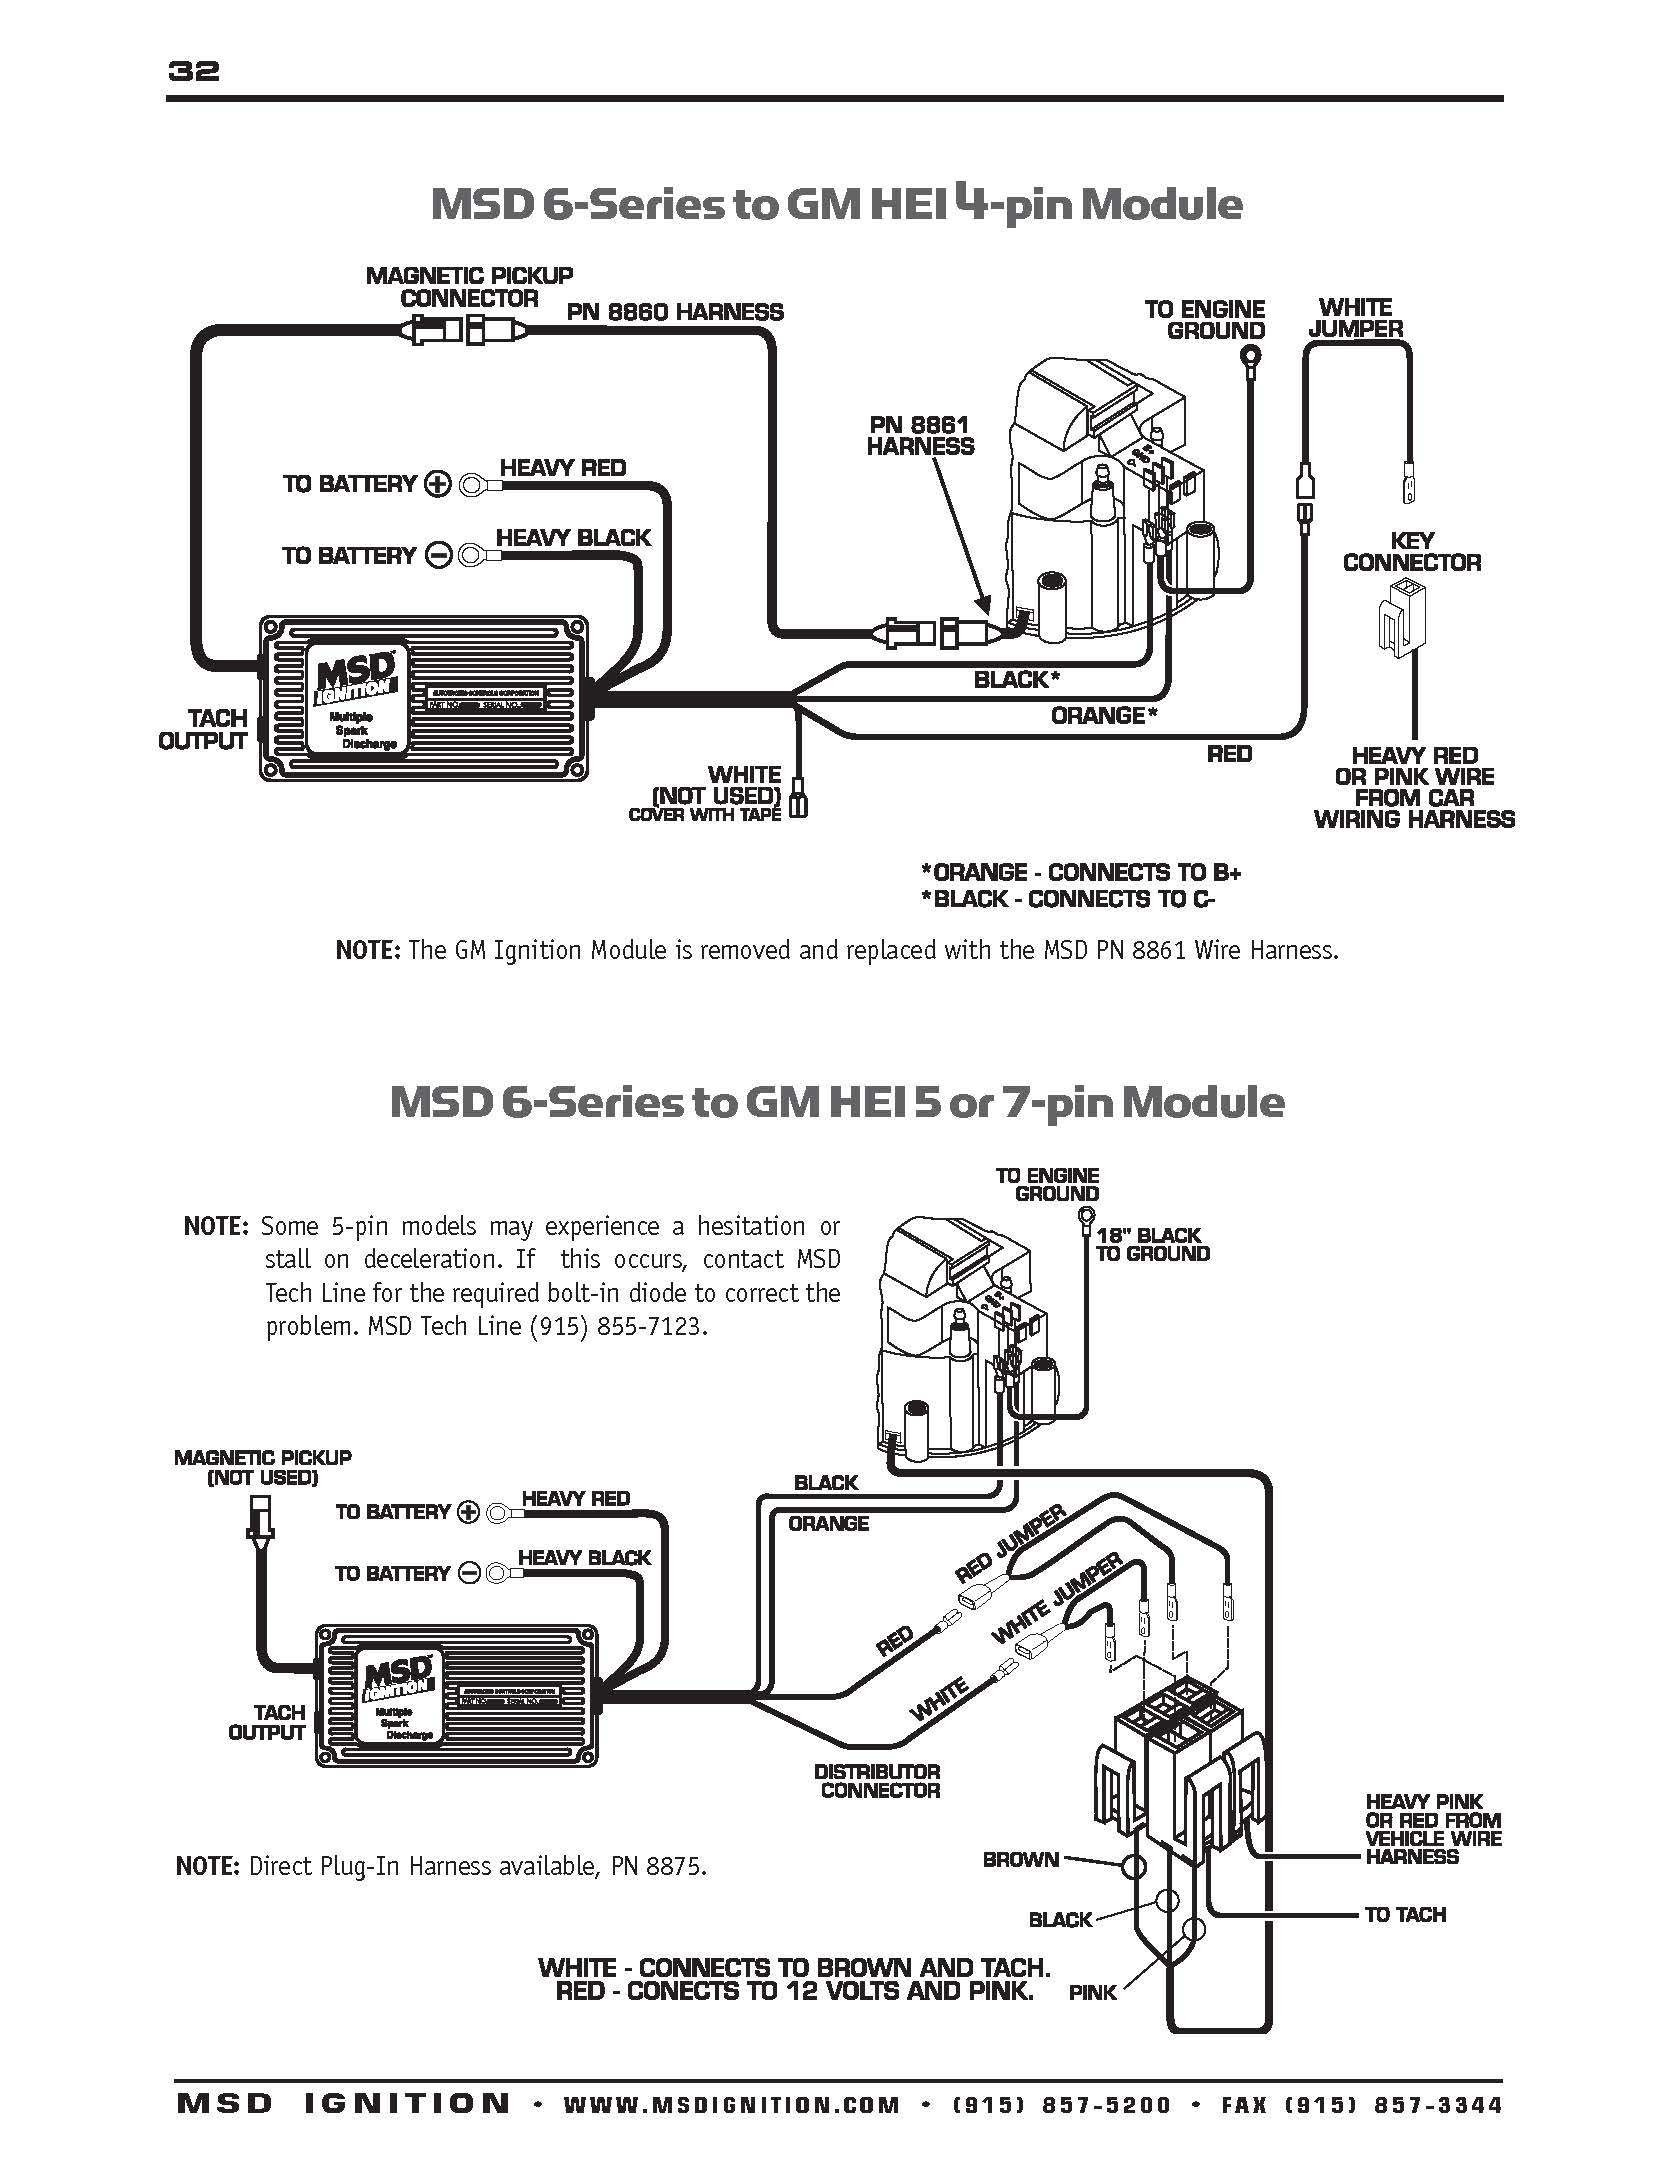 Mallory Distributor To Msd Wiring Diagram